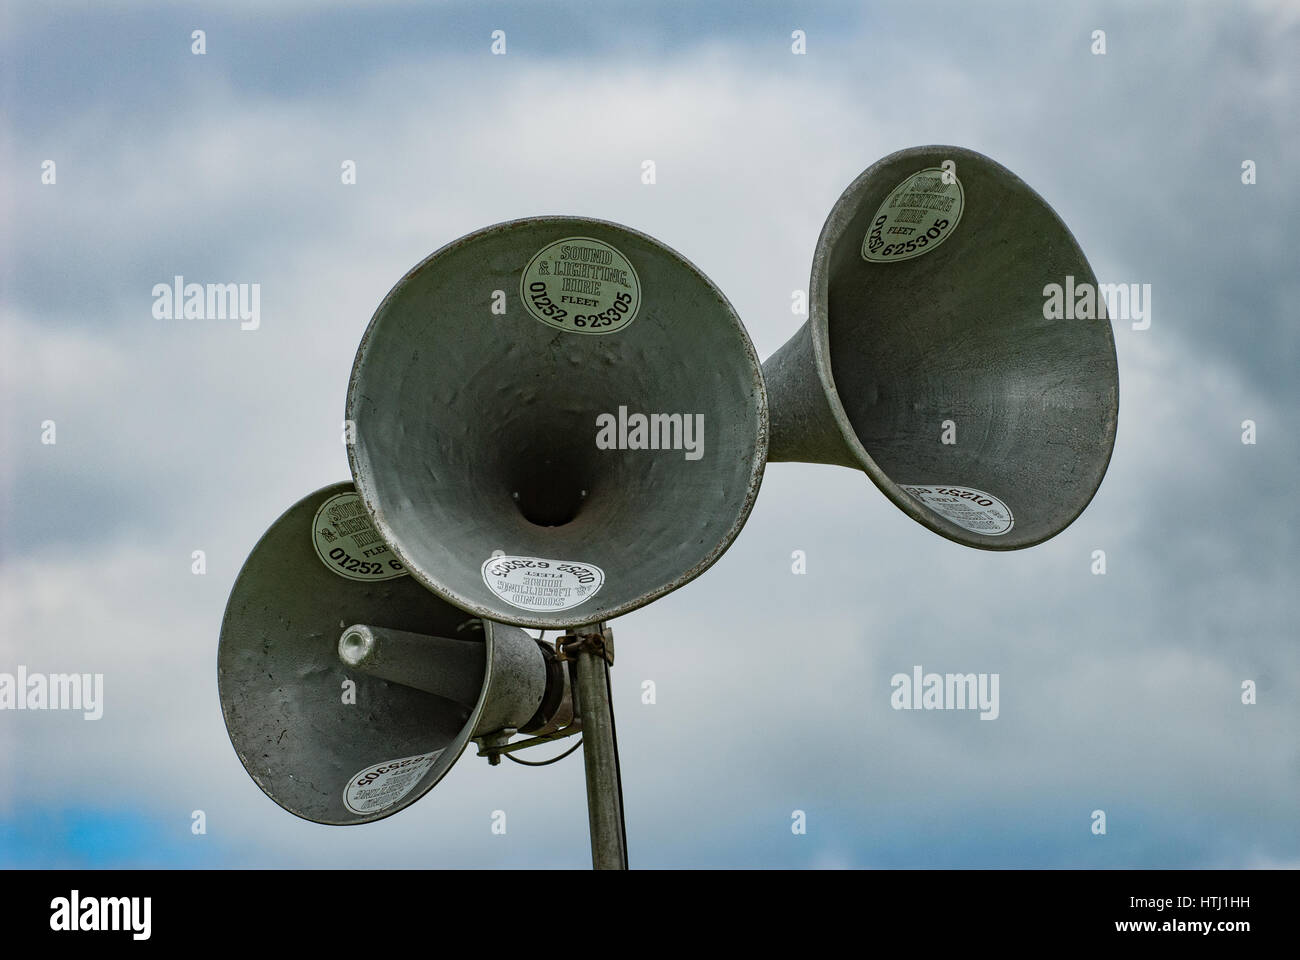 A trio of horn shaped loudspeakers with a cloudy blue sky background. - Stock Image